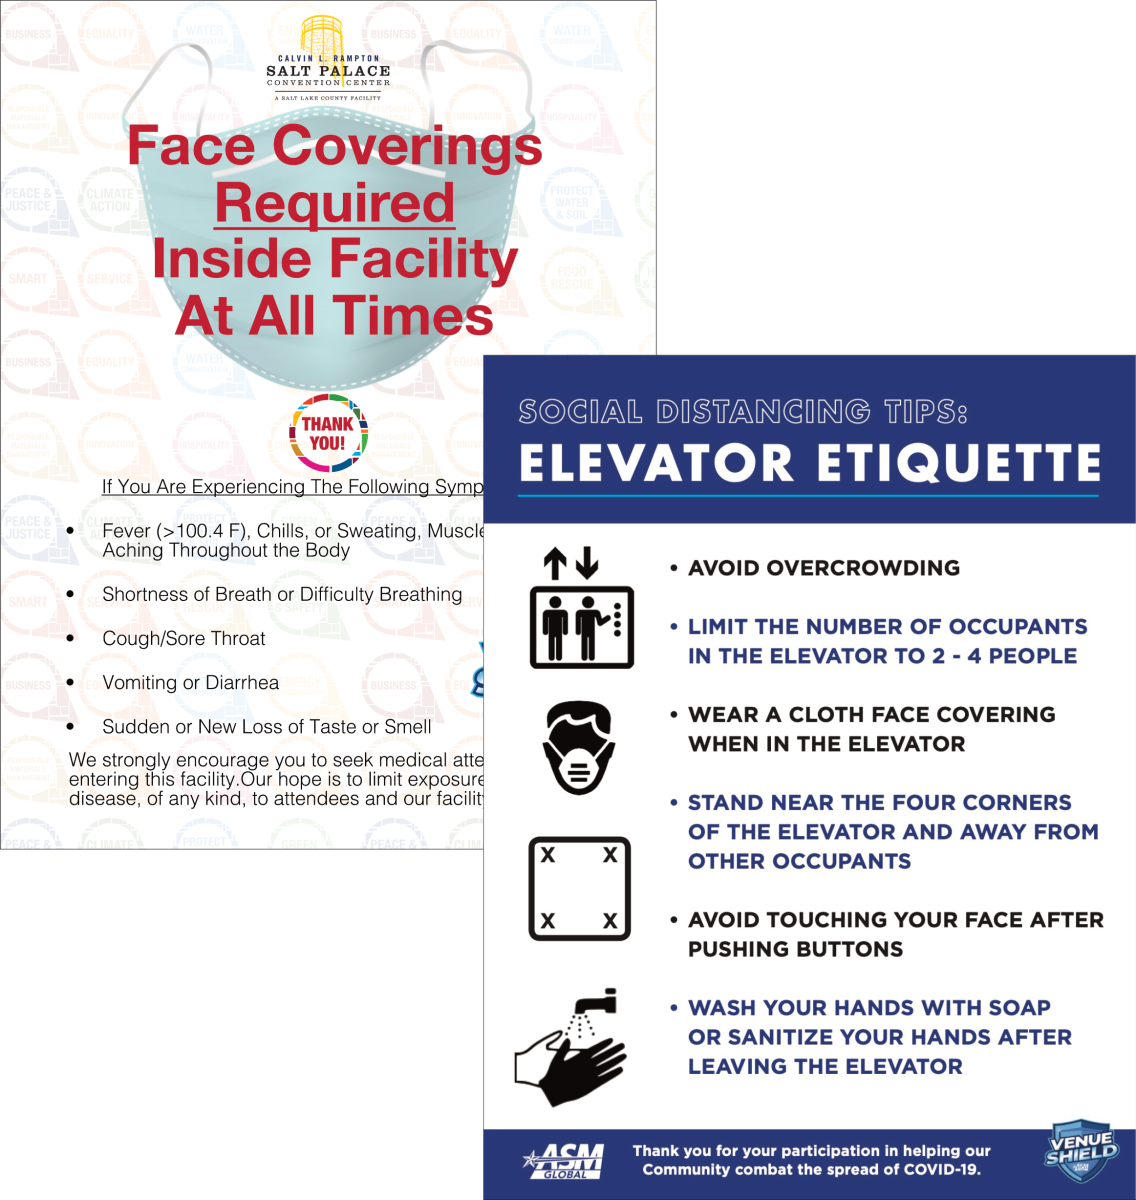 Elevator/Face Coverings